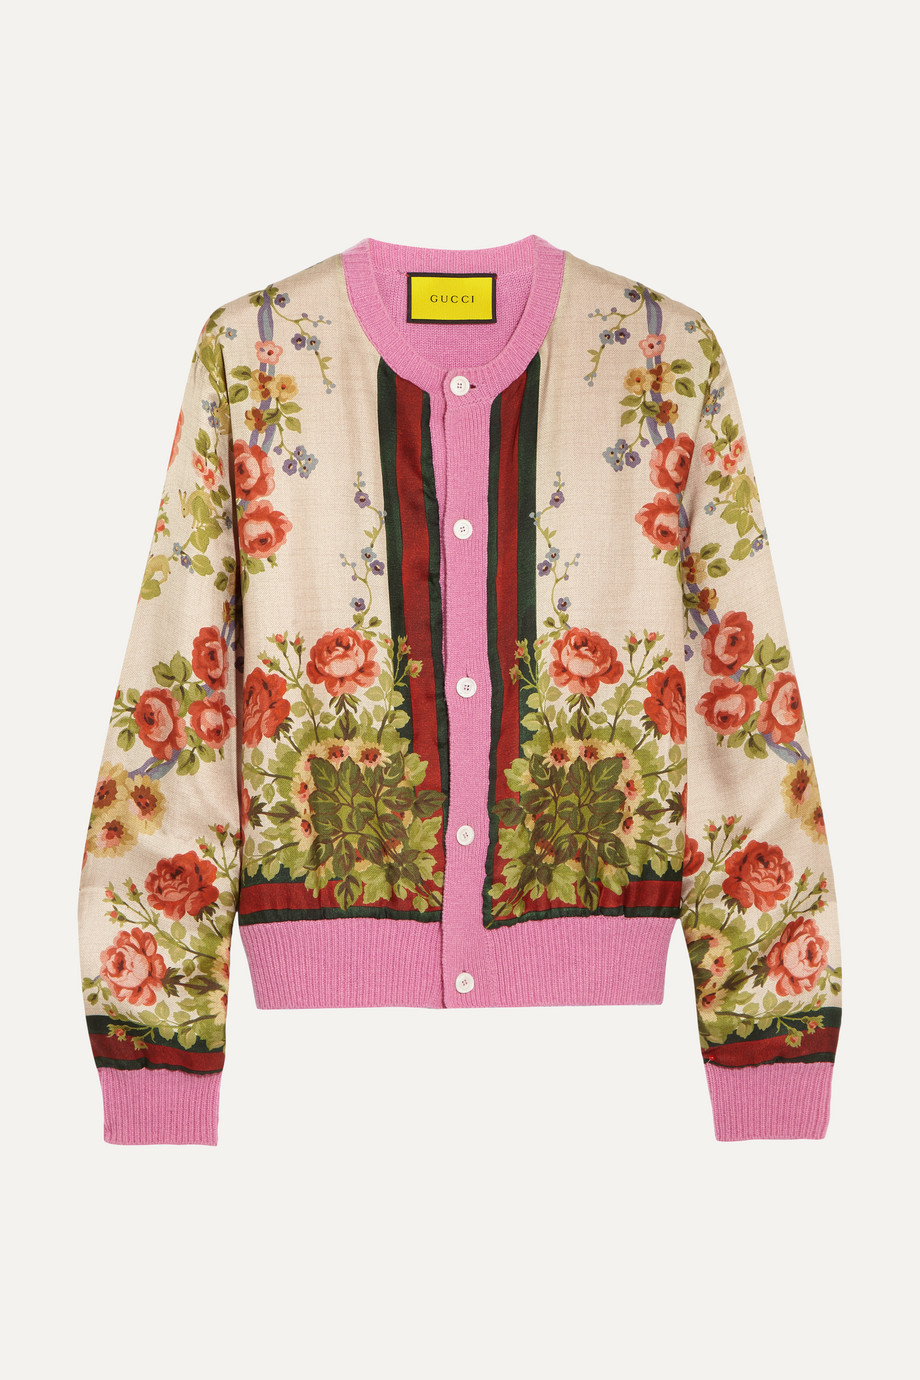 Gucci for NET-A-PORTER Floral-print silk and wool-blend cardigan